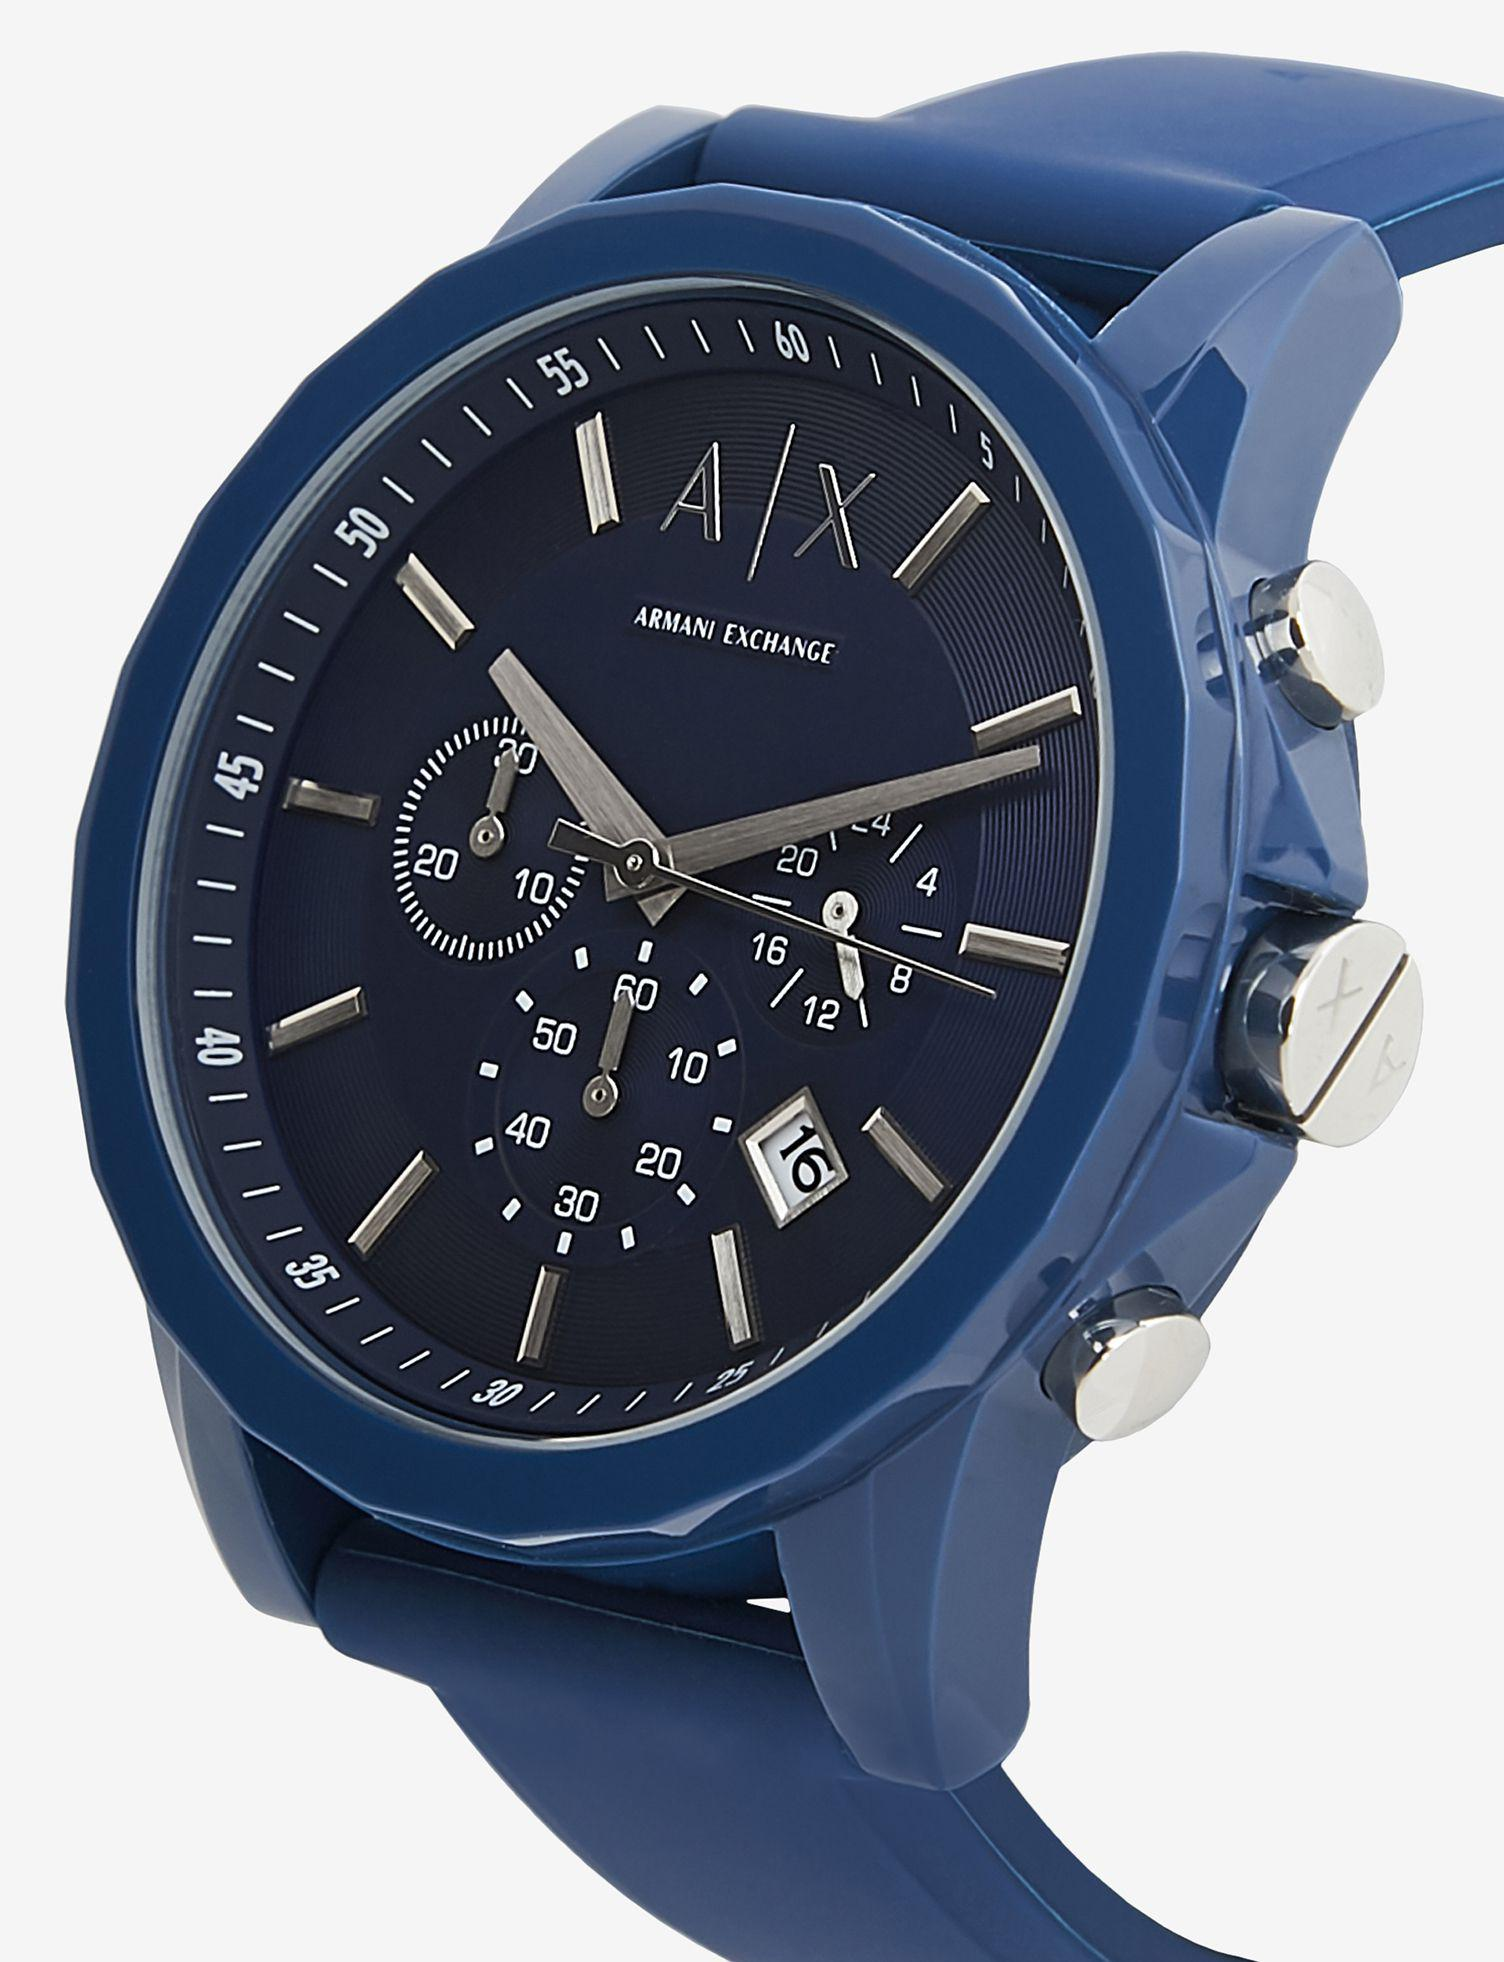 9bfb4c291857 Lyst - Armani Exchange Chronograph Blue Silicone Strap Watch With LUGGAGE  Tag Set in Blue for Men